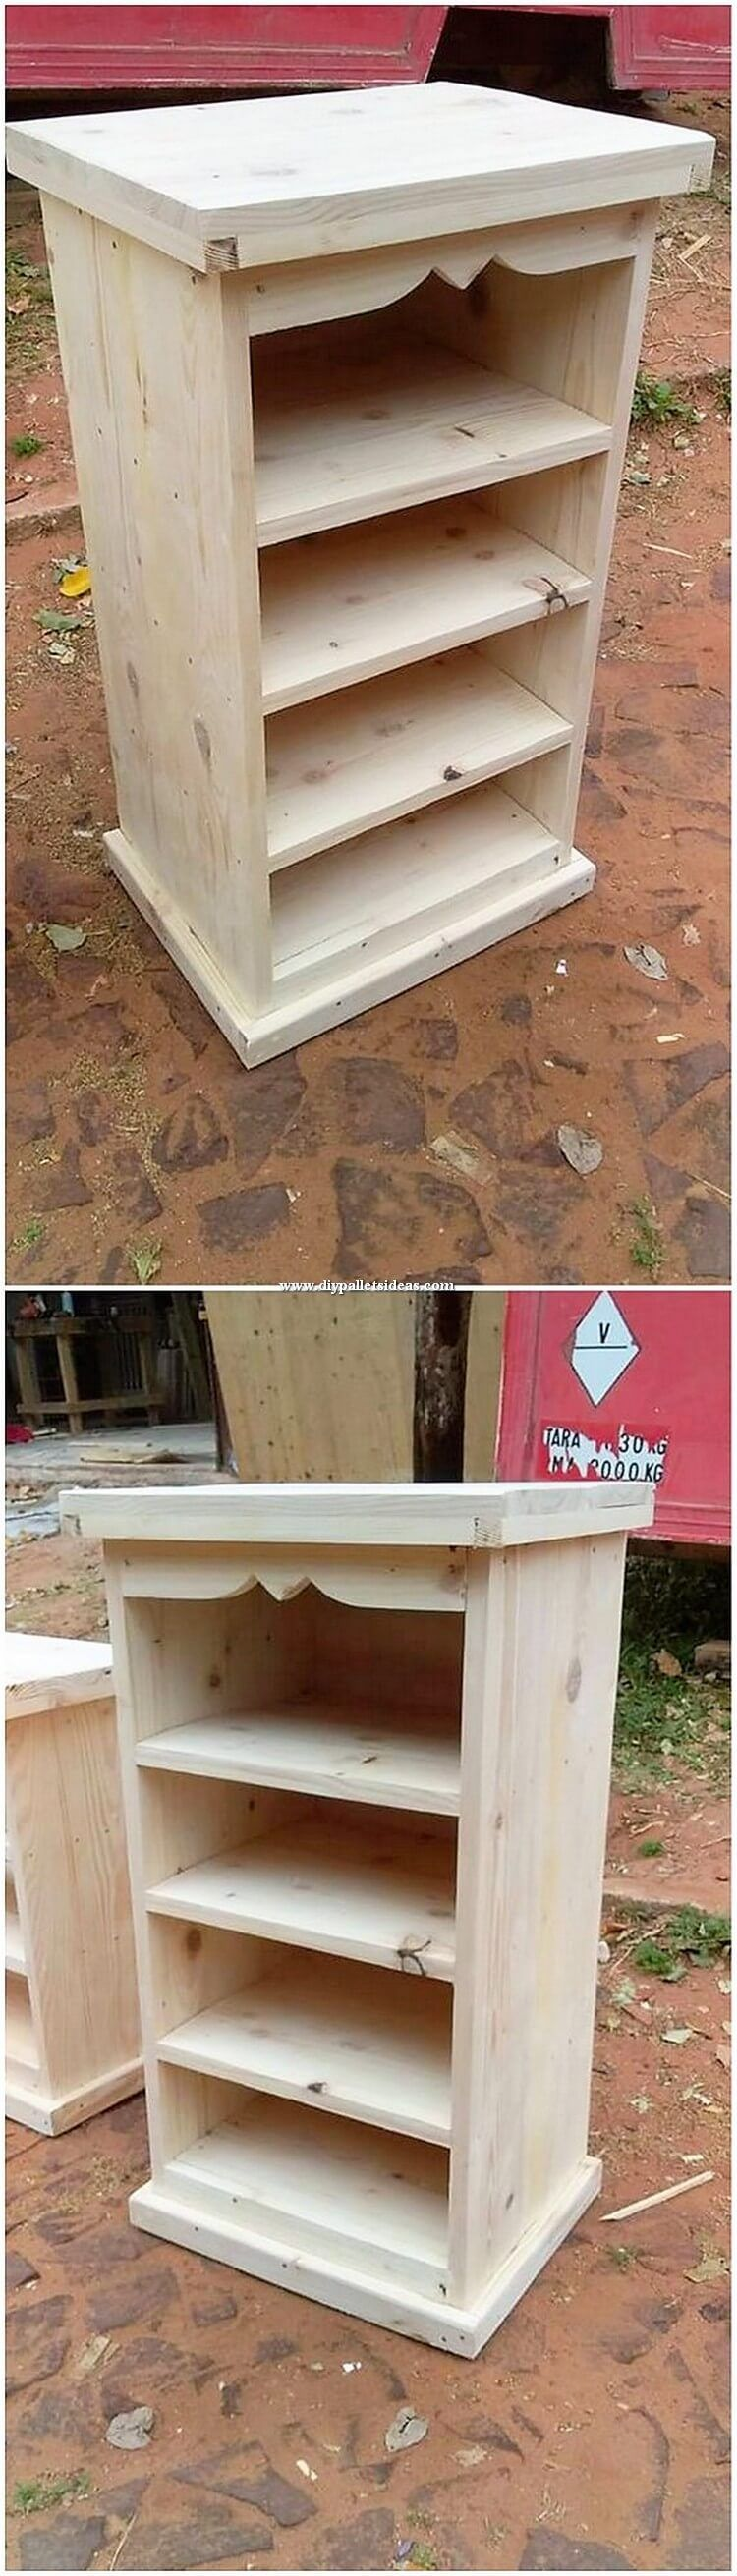 Innovative DIY Ideas of Old Pallets Recycling #oldpalletsforcrafting